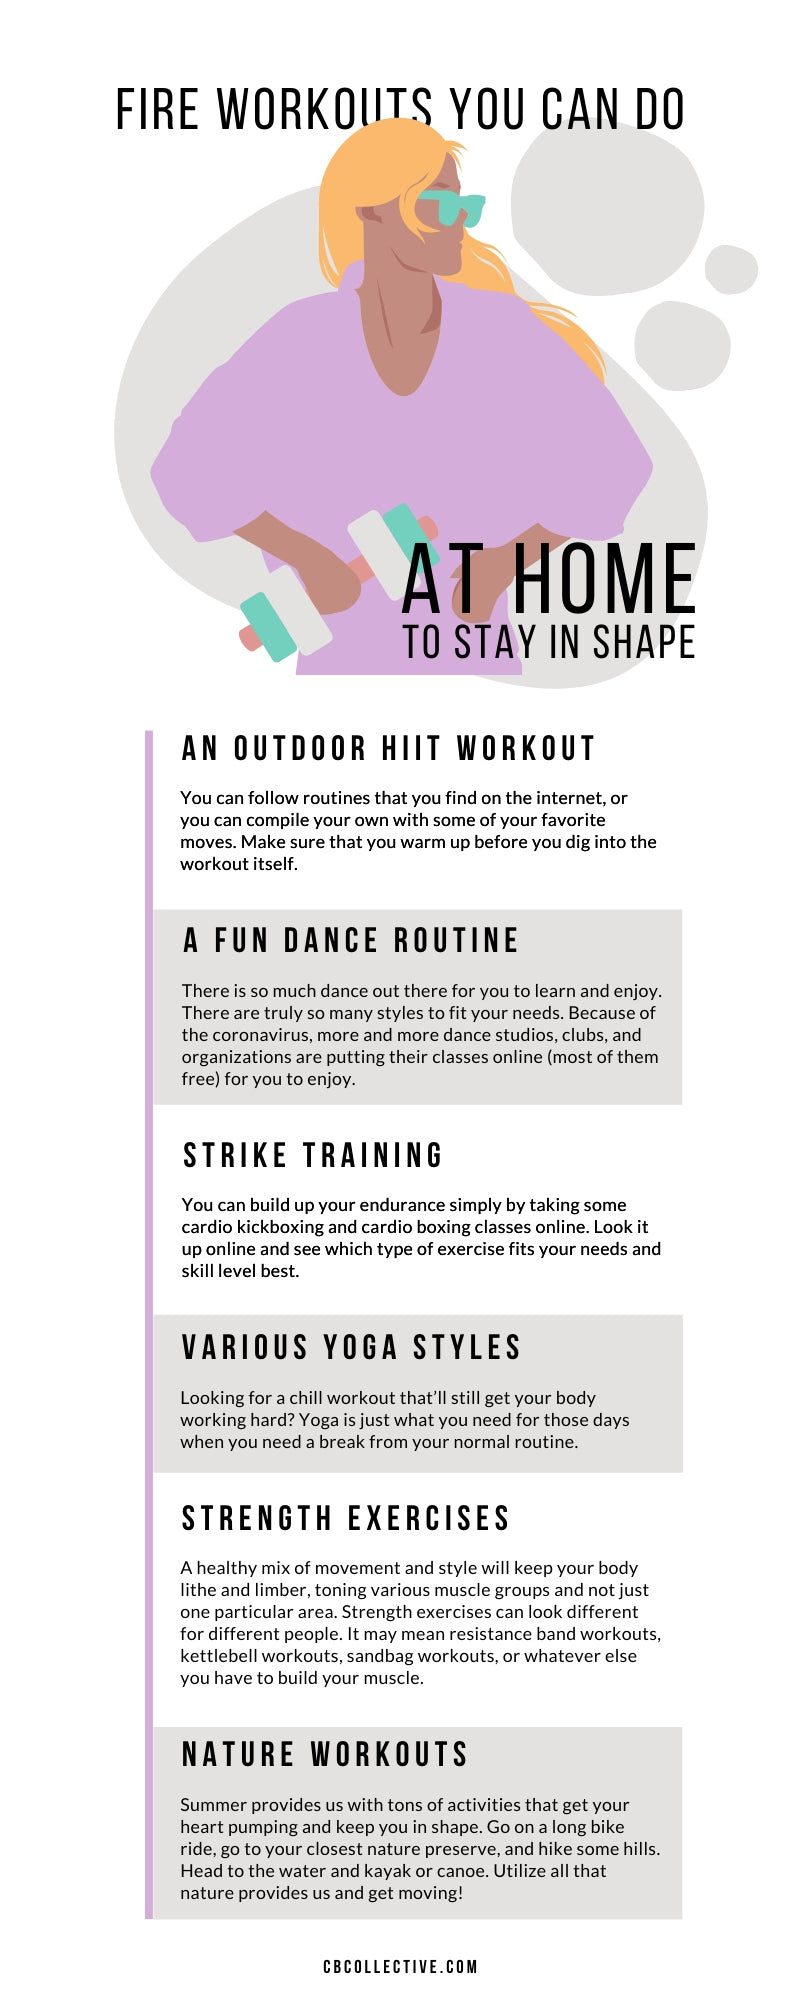 Workouts You Can Do at Home to Stay in Shape